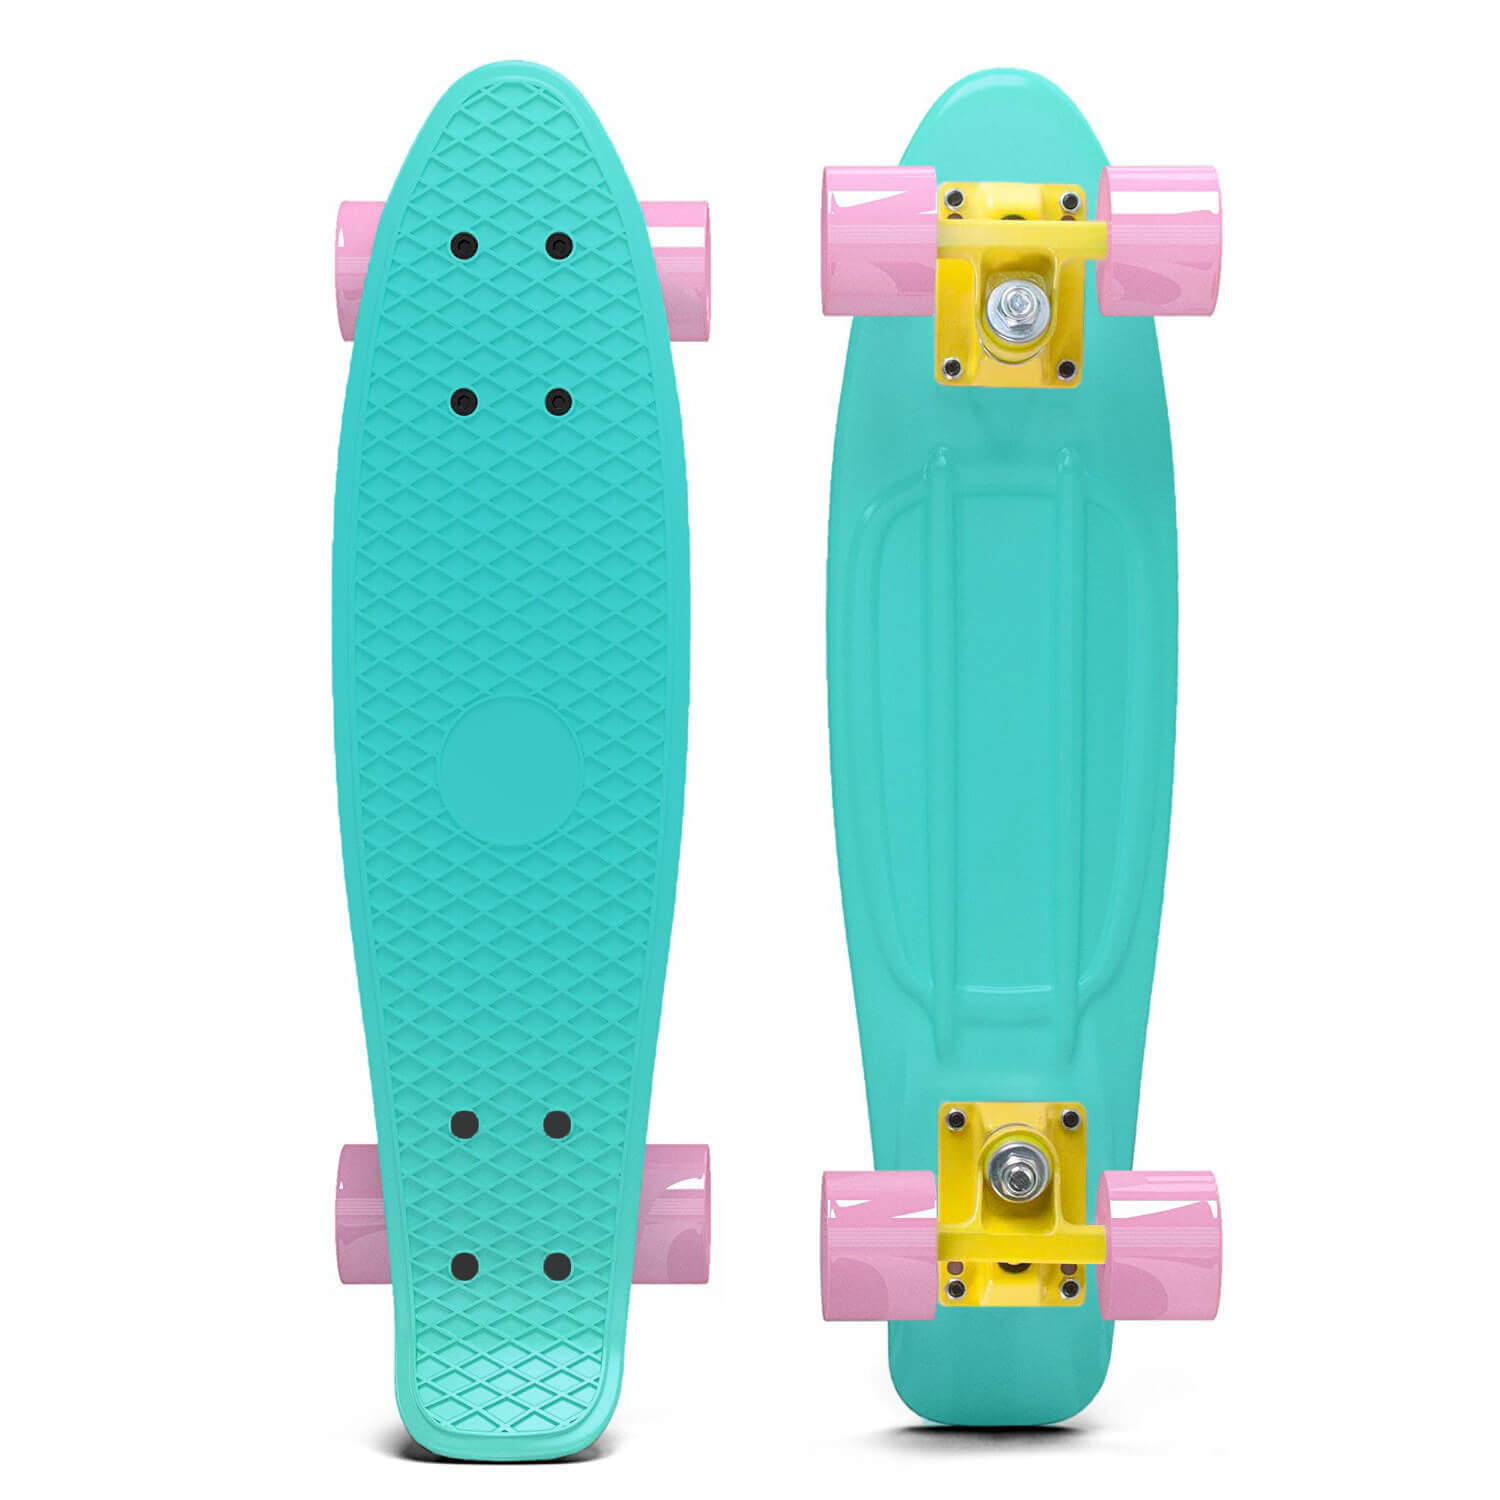 Pastel Penny Style Cruiser 22 inch Board Plastic Retro Mini Skateboard Complete, Turquoise by Scale Sports